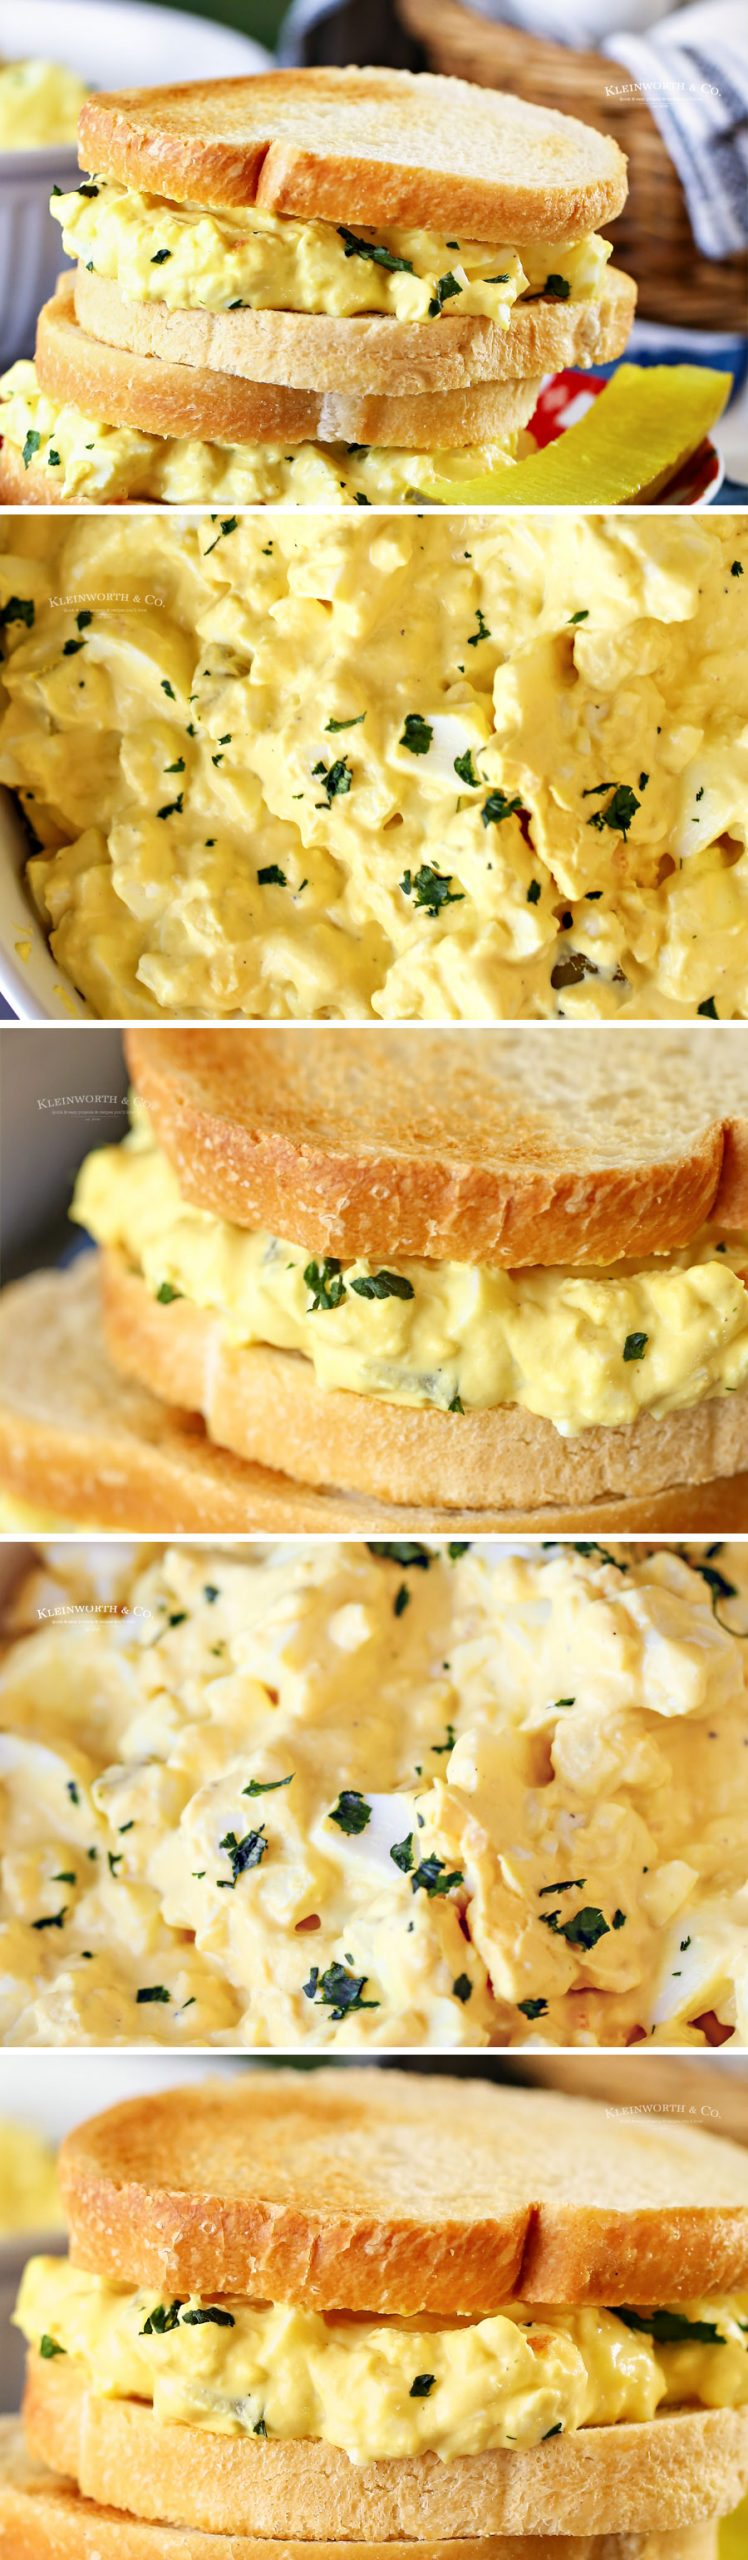 how to make the Best Egg Salad Recipe